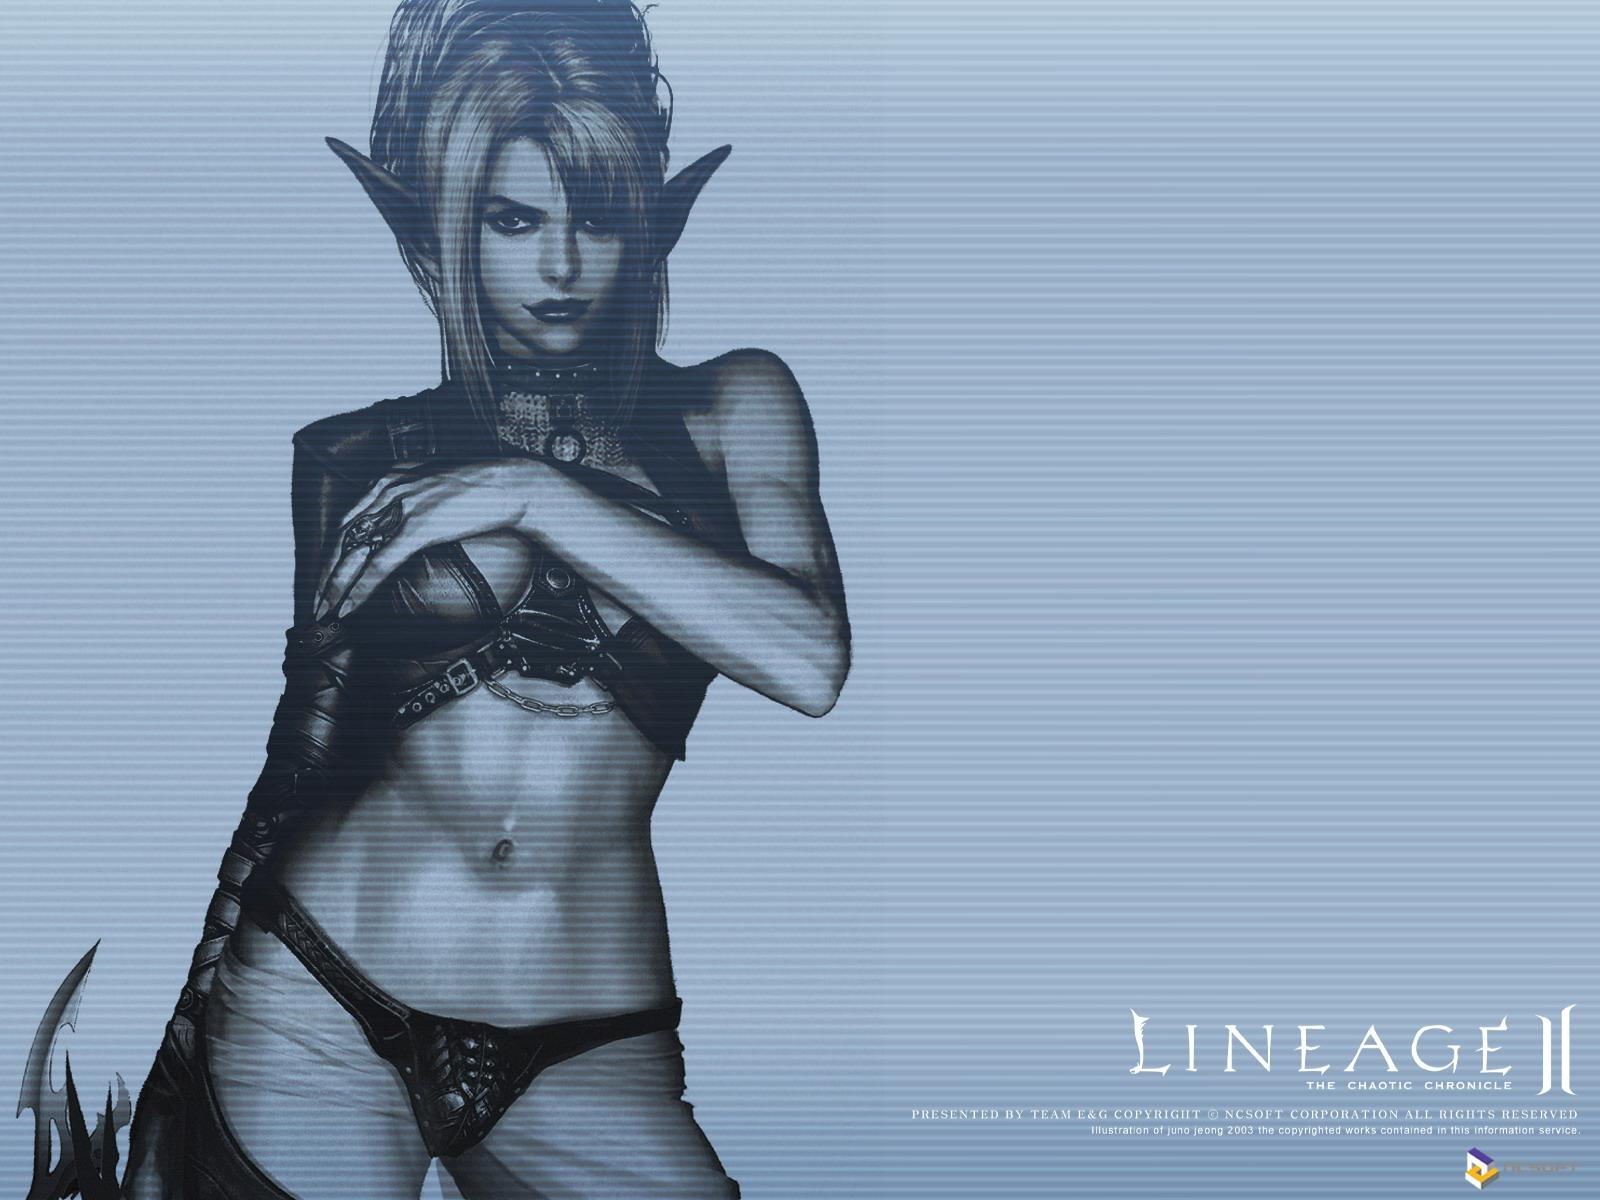 ���� �������� Lineage 2 1600x1200